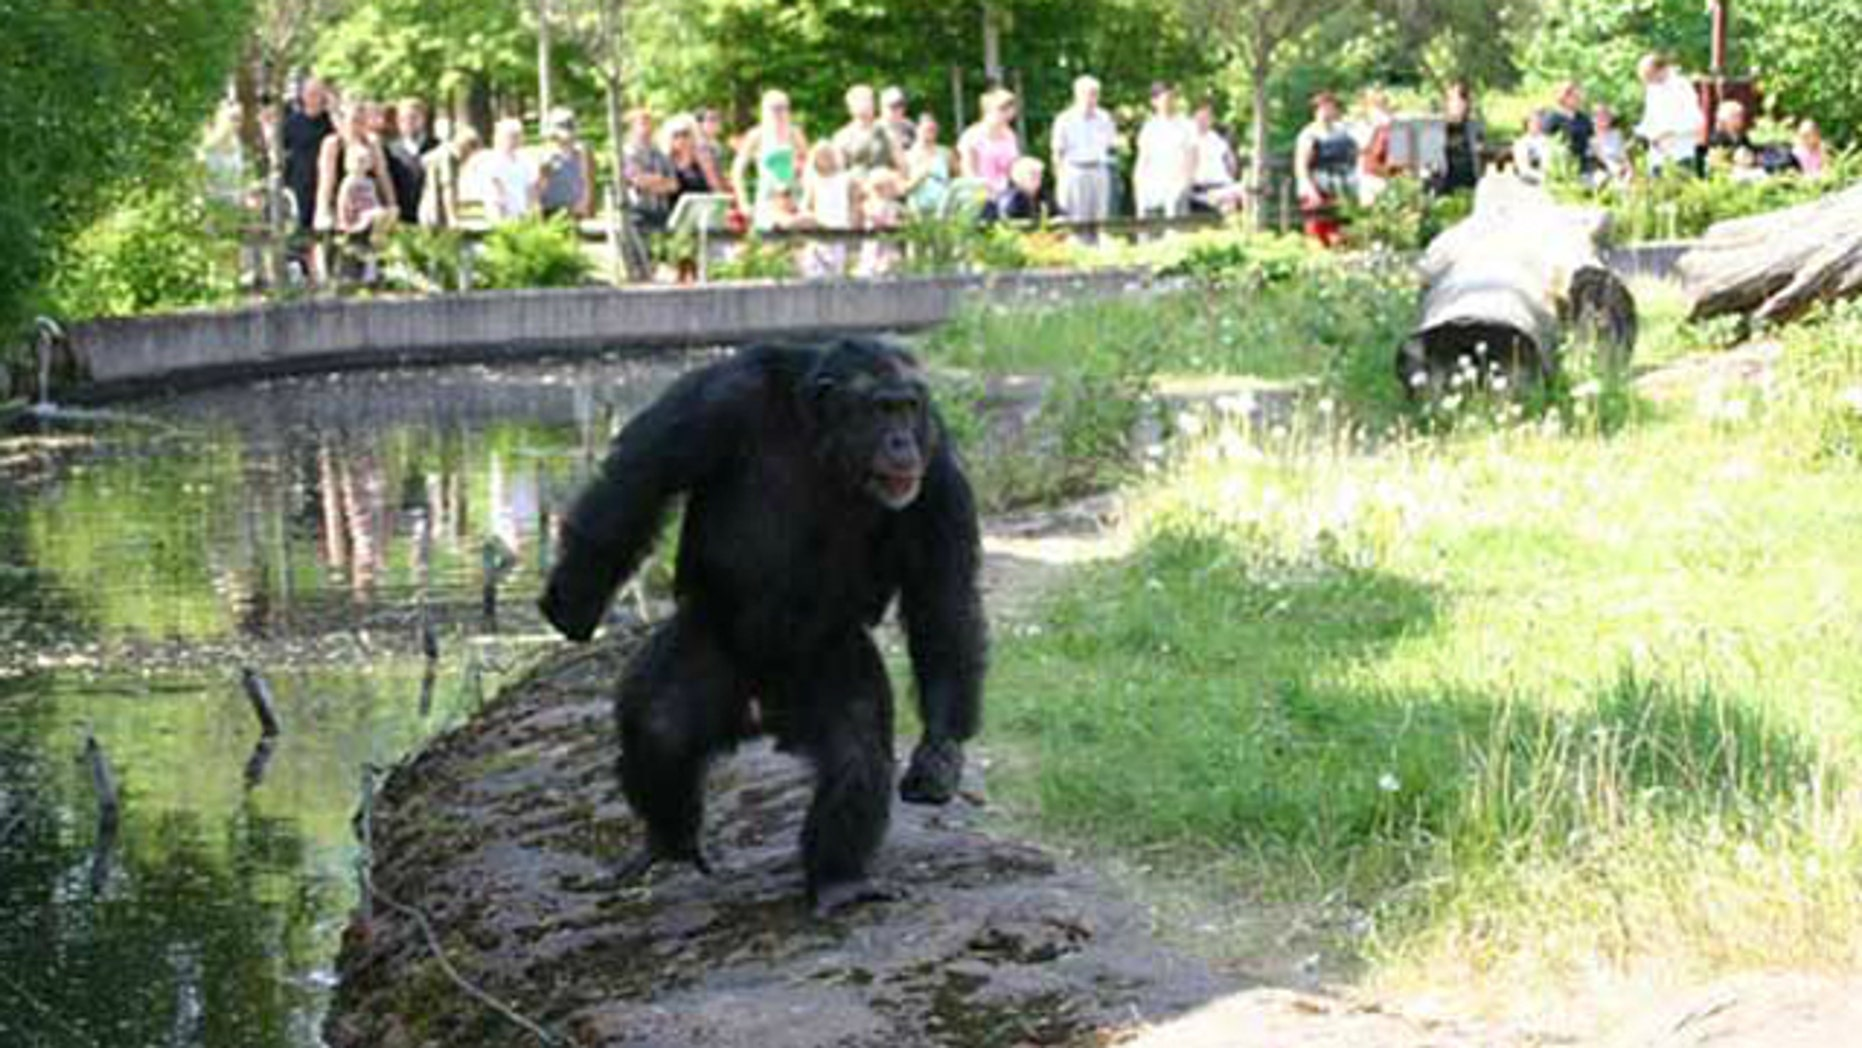 "Santino,"" a male chimpanzee at Furuvik Zoo in Sweden, is devising increasingly complex attacks against zoo visitors. Here, he postures, looking tough, in front of zoo visitors."